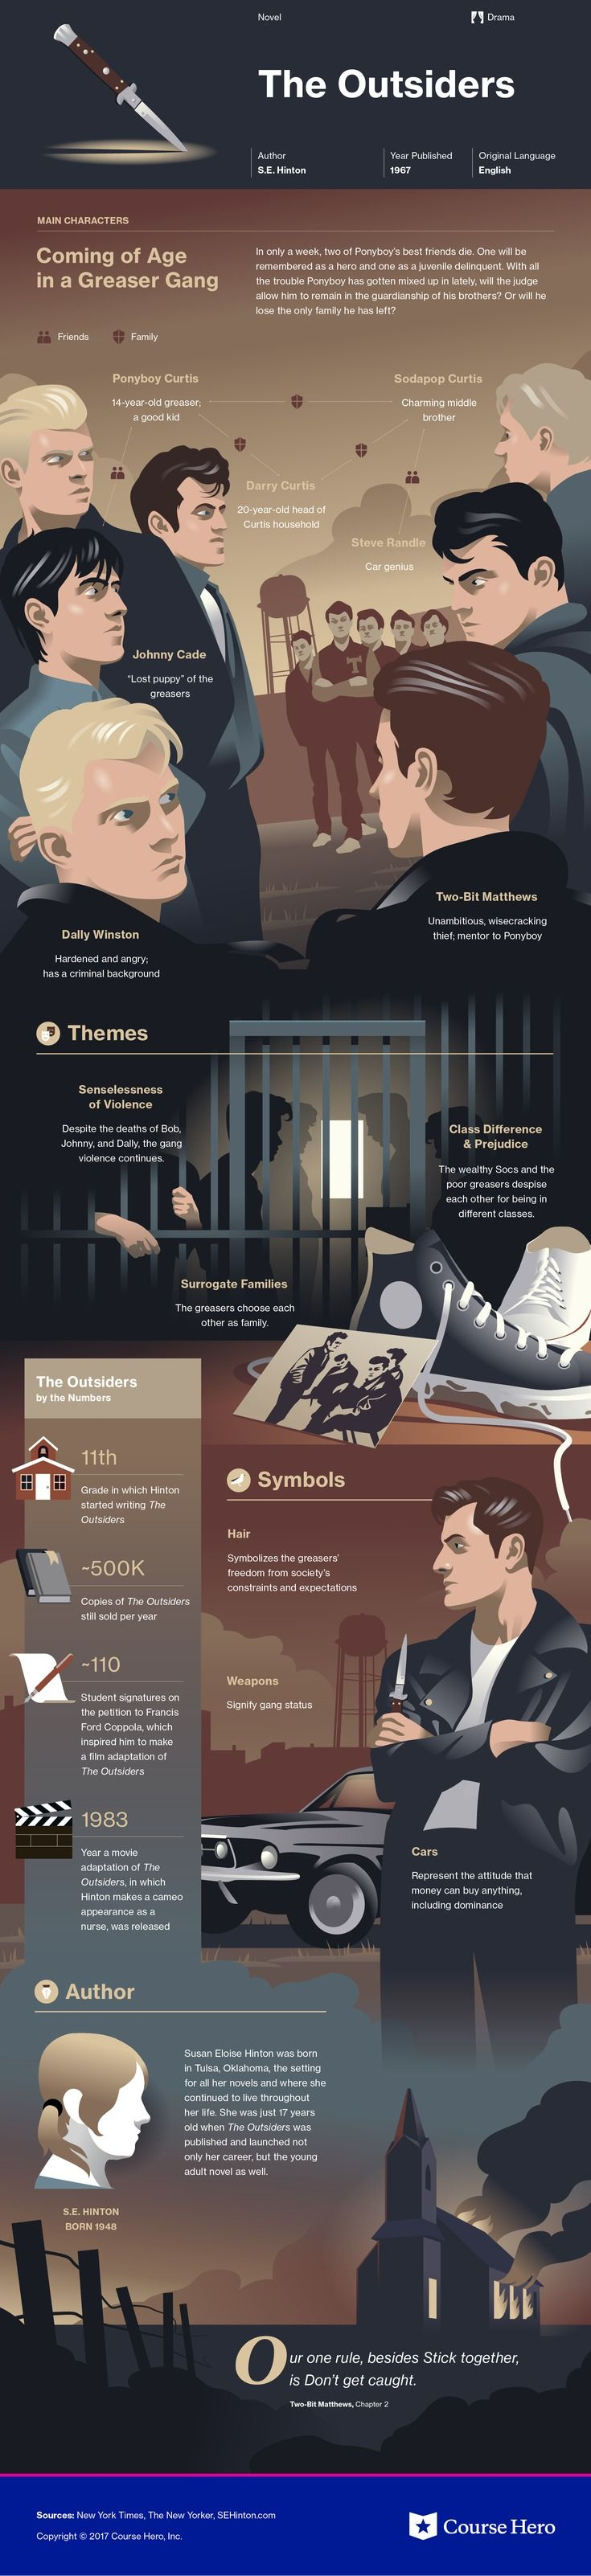 This @CourseHero infographic on The Outsiders is both visually stunning and informative!